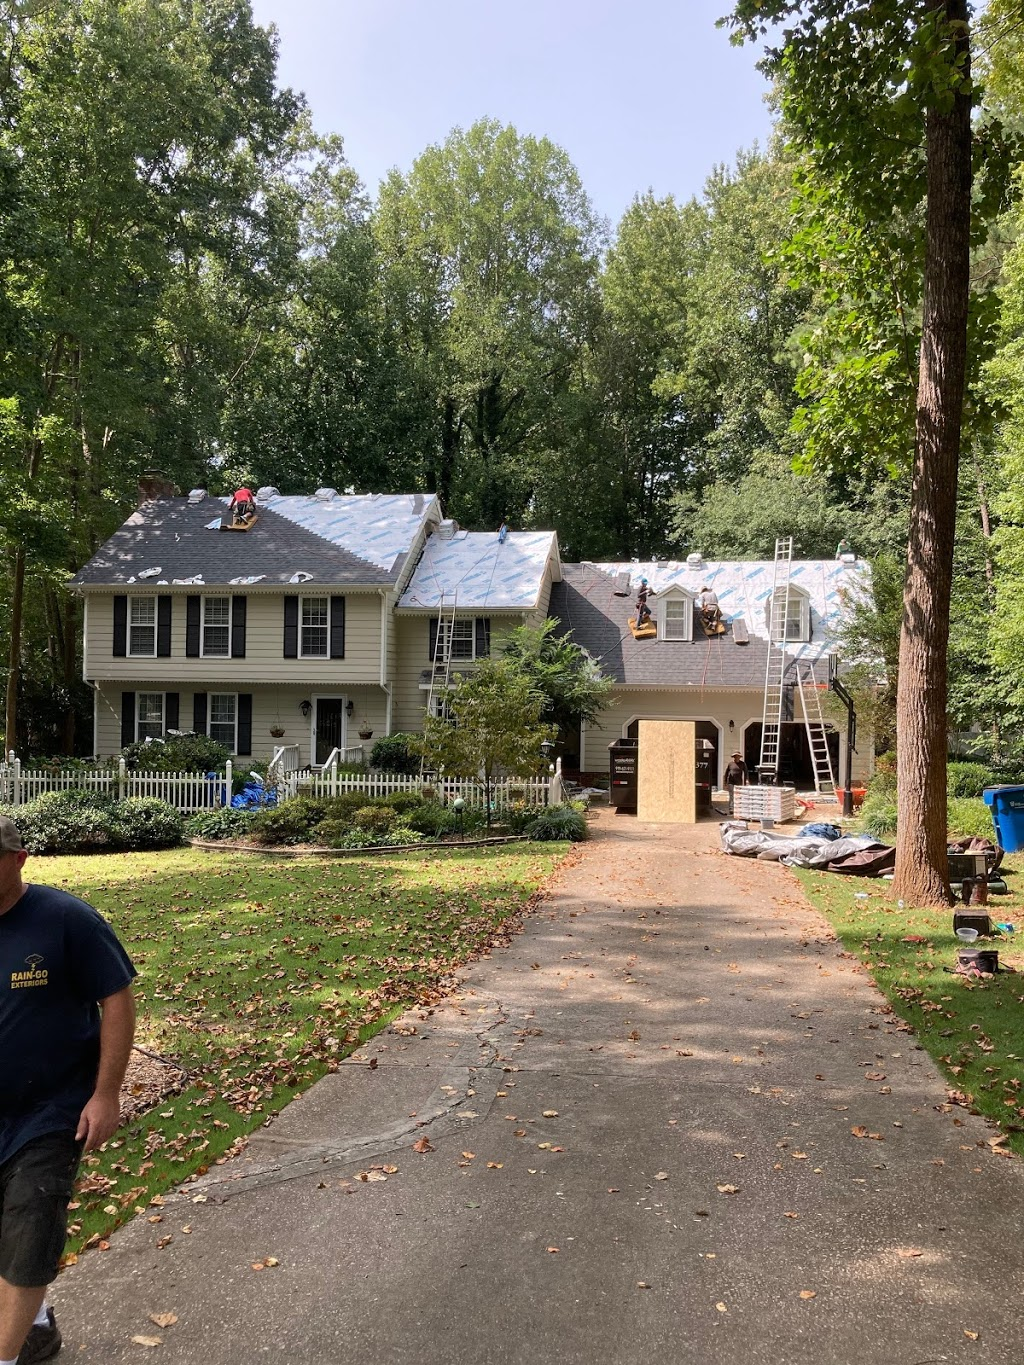 Rain-Go Gutters & Roofing Raleigh - roofing contractor  | Photo 6 of 6 | Address: 3941 NC-42, Raleigh, NC 27603, USA | Phone: (919) 875-0700